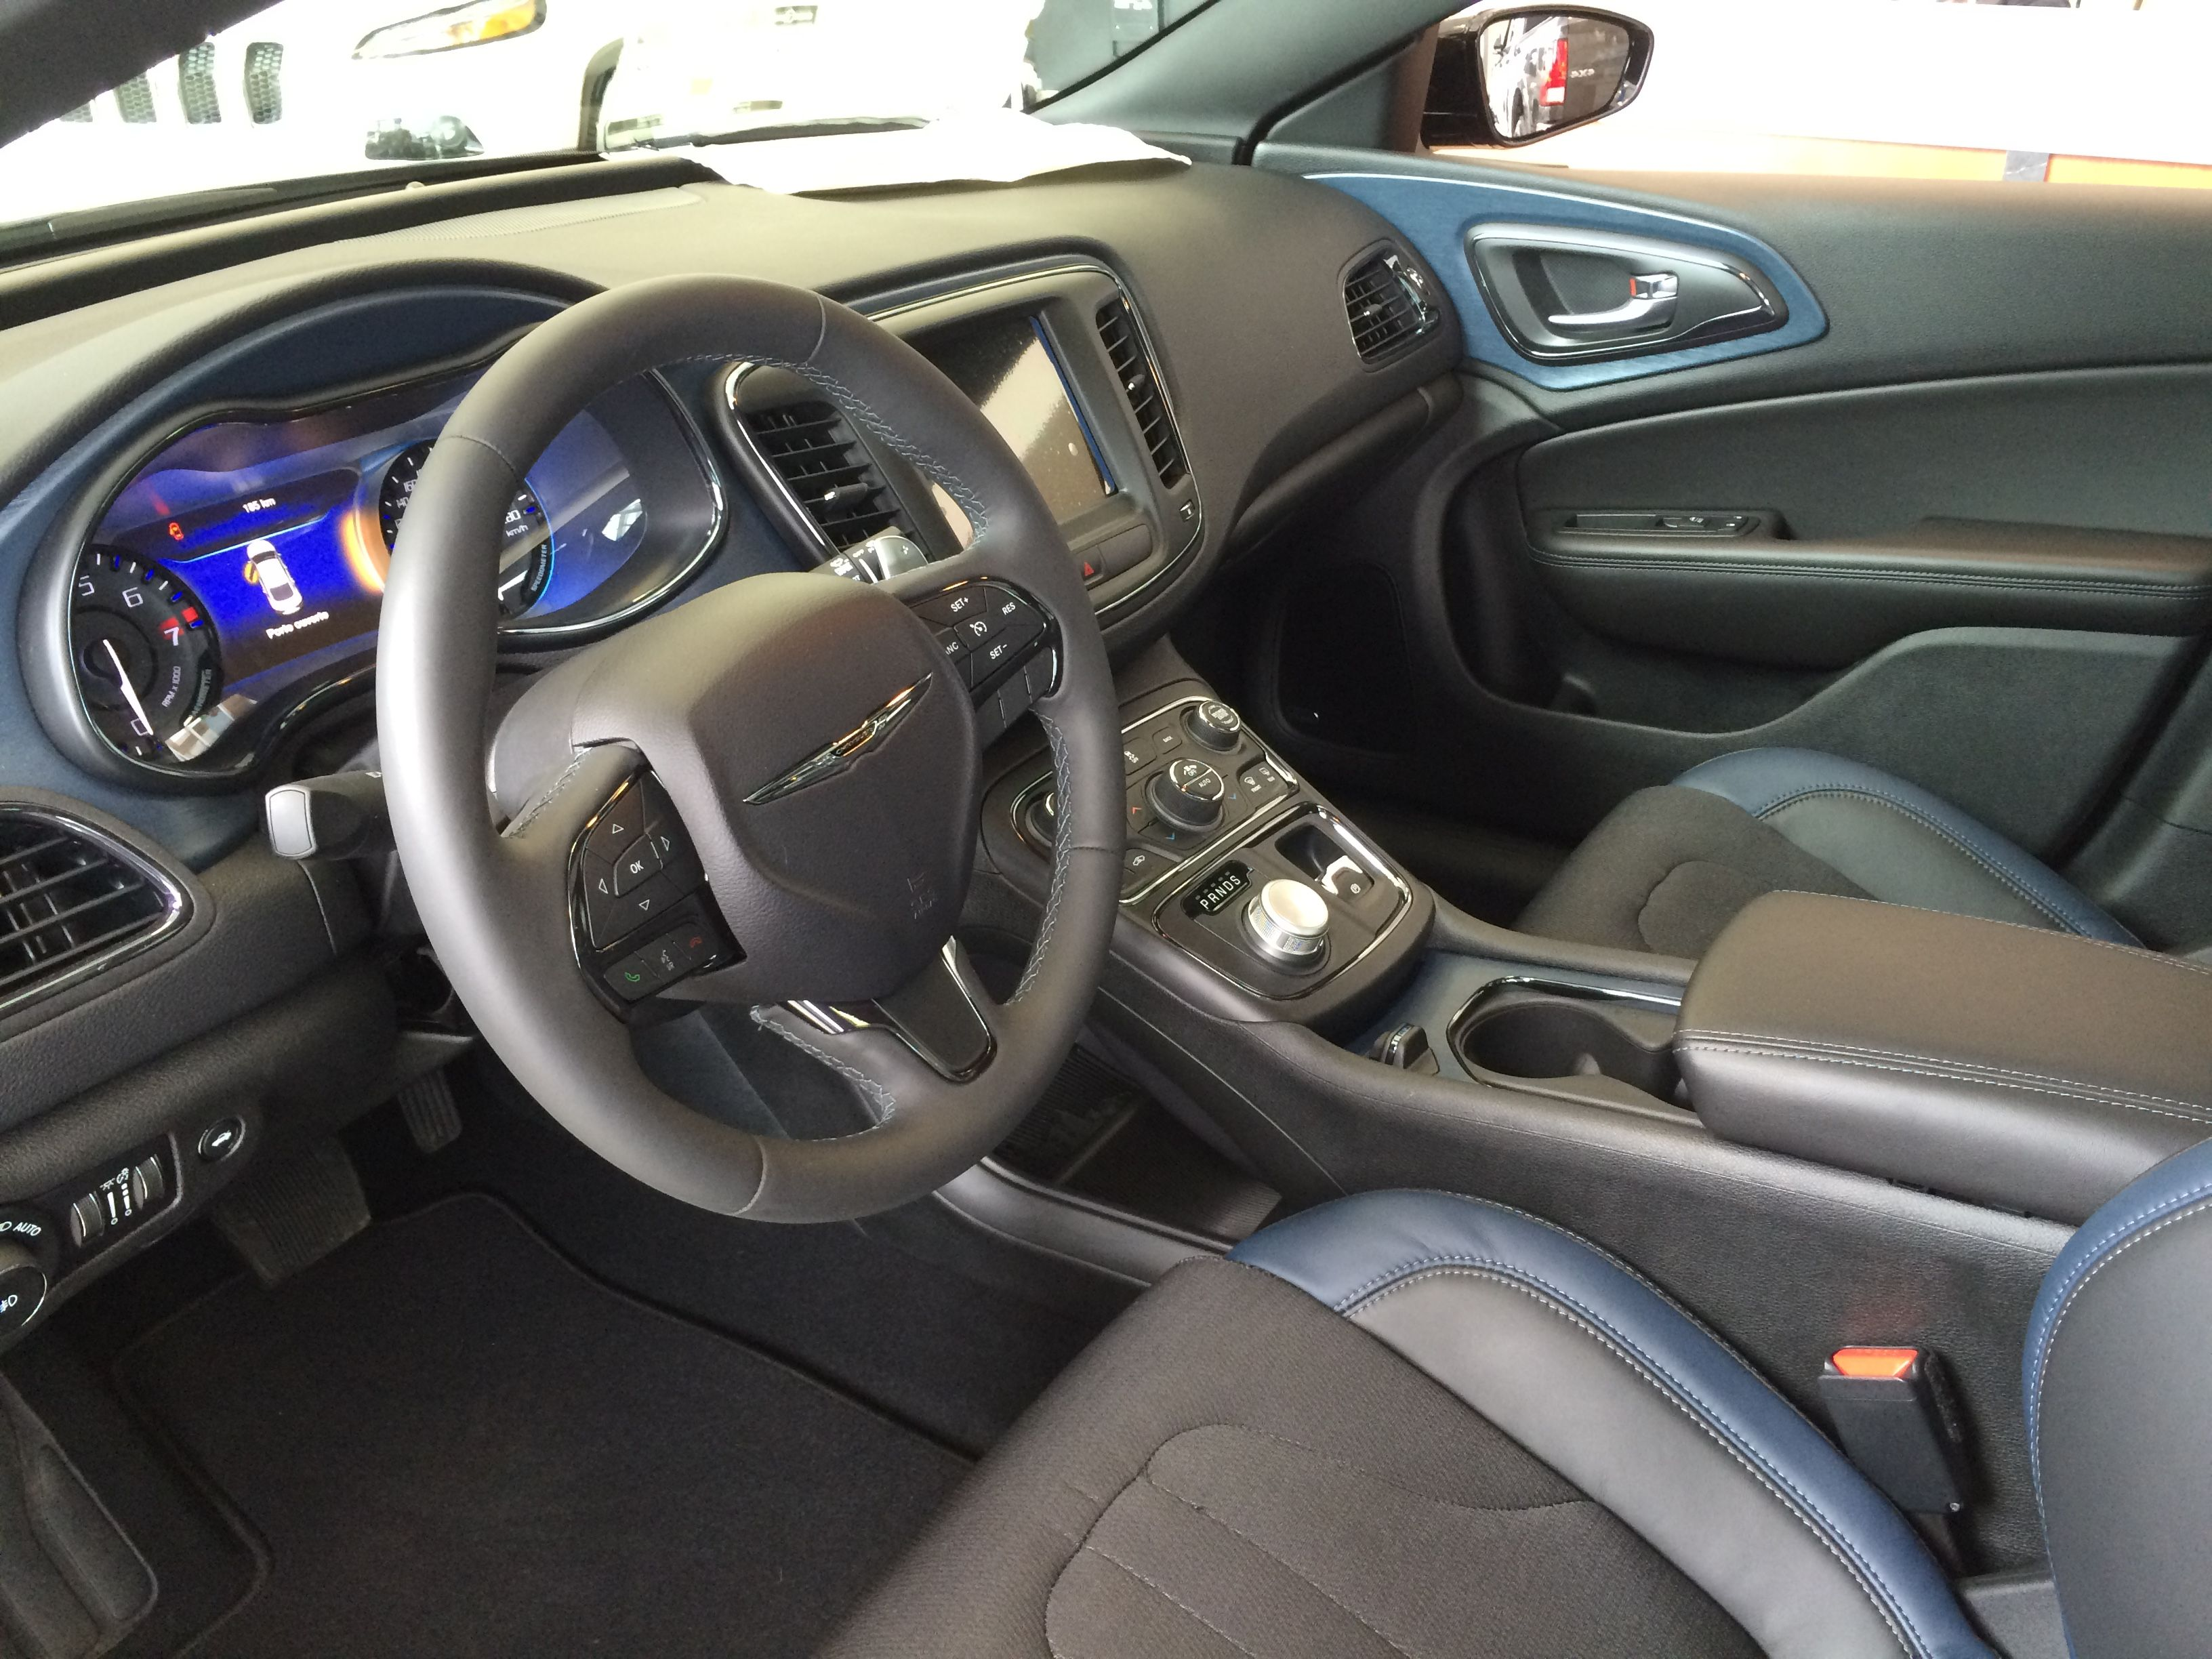 Un Tableau De Bord A La Mesure De Vos Attentes Car Goals Chrysler 200 Steering Wheel